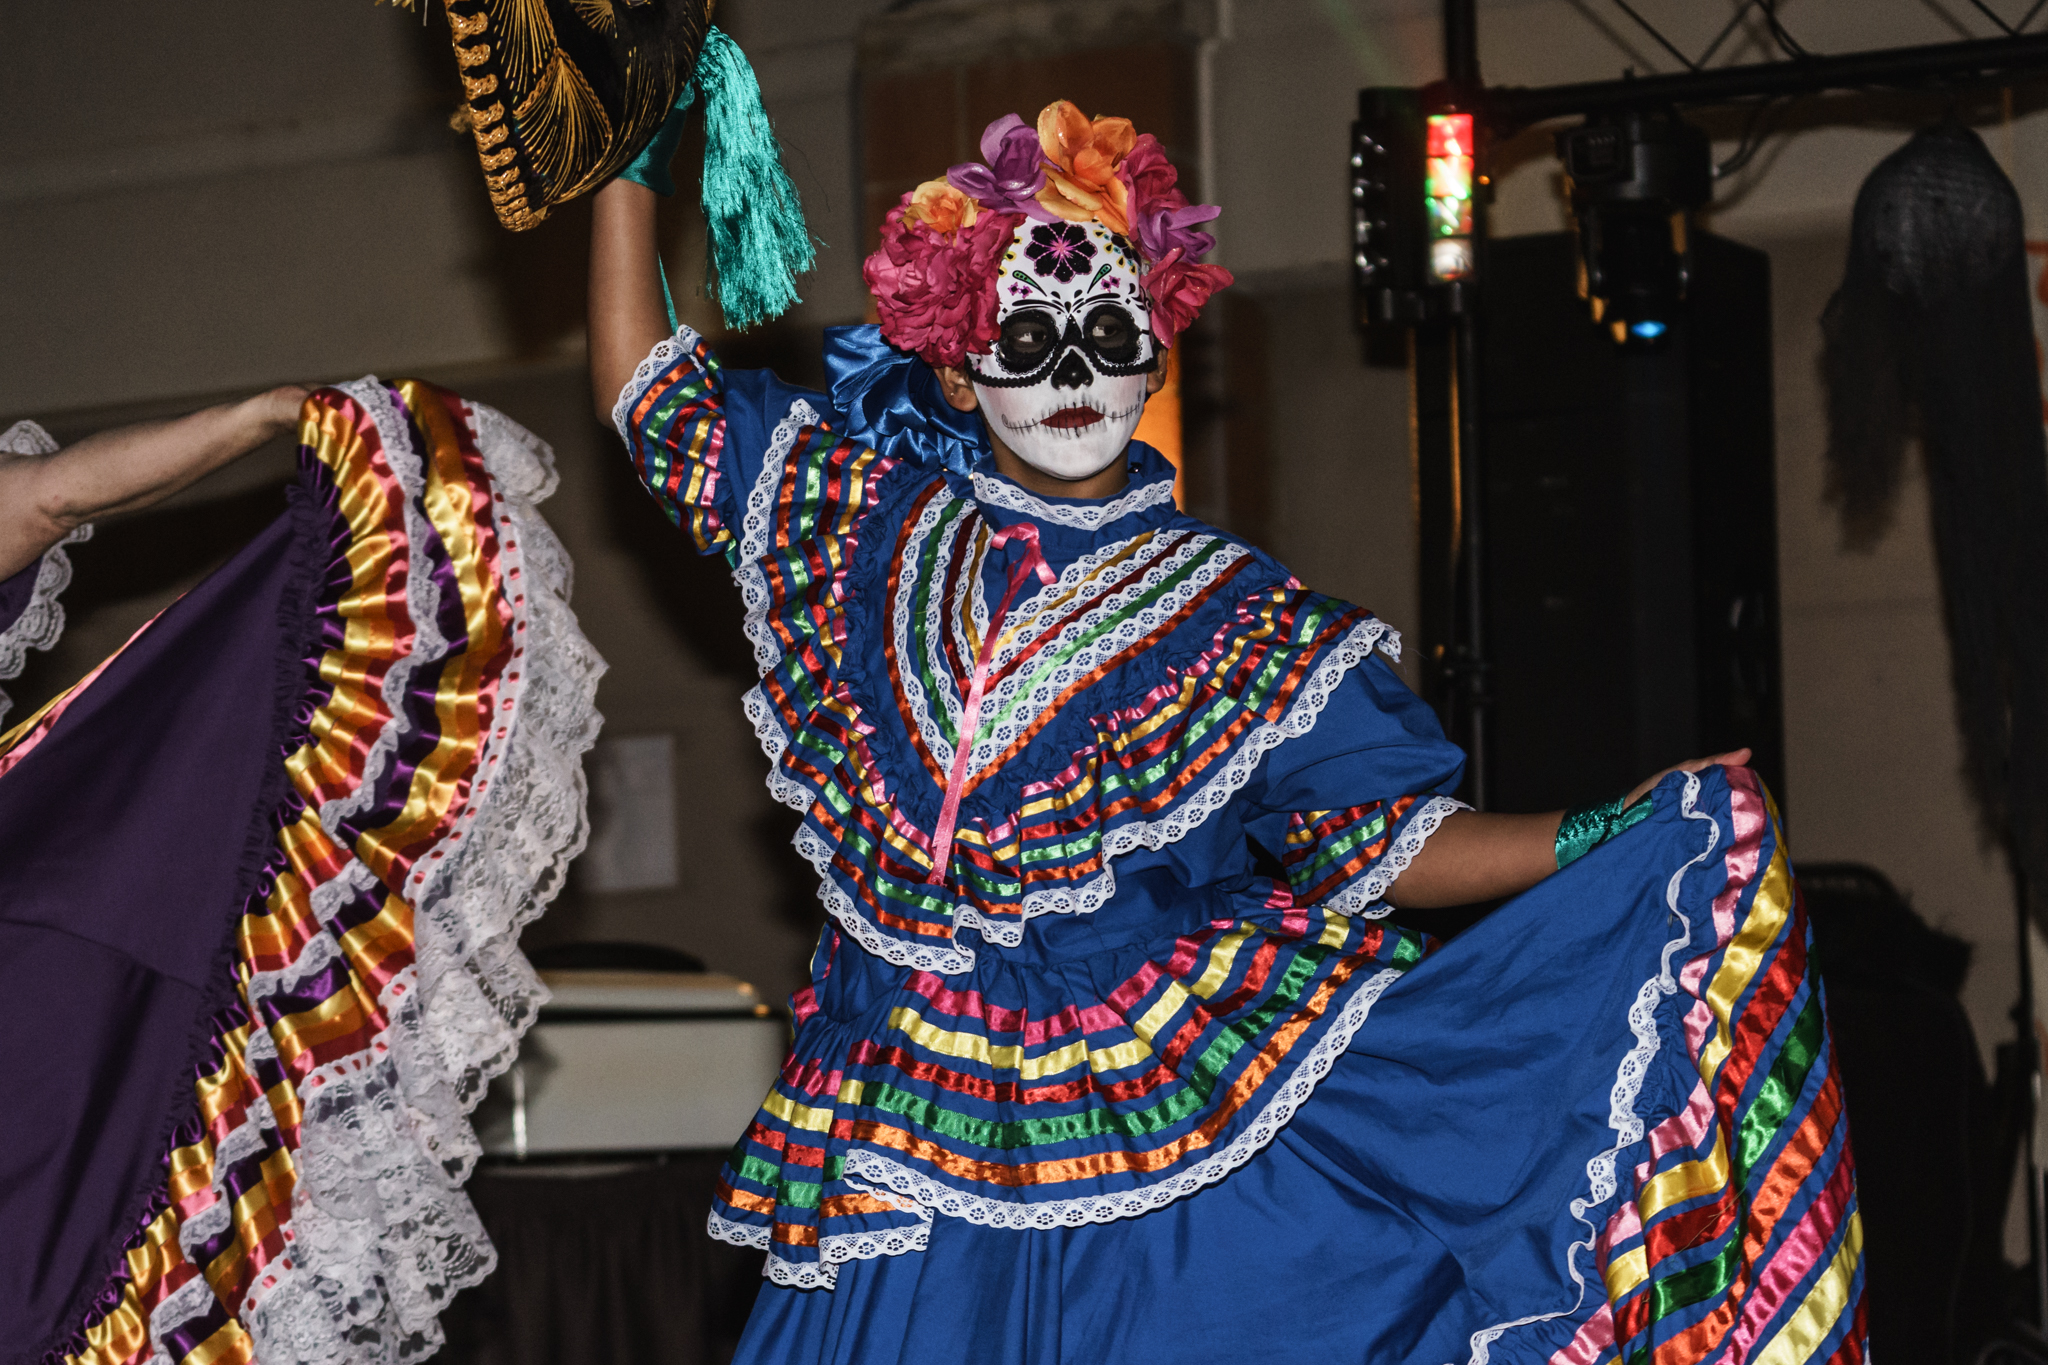 A dancer in a Jalisco dress and Sugar Skull mask performs at EUVALCREE's Day of the Dead celebration.